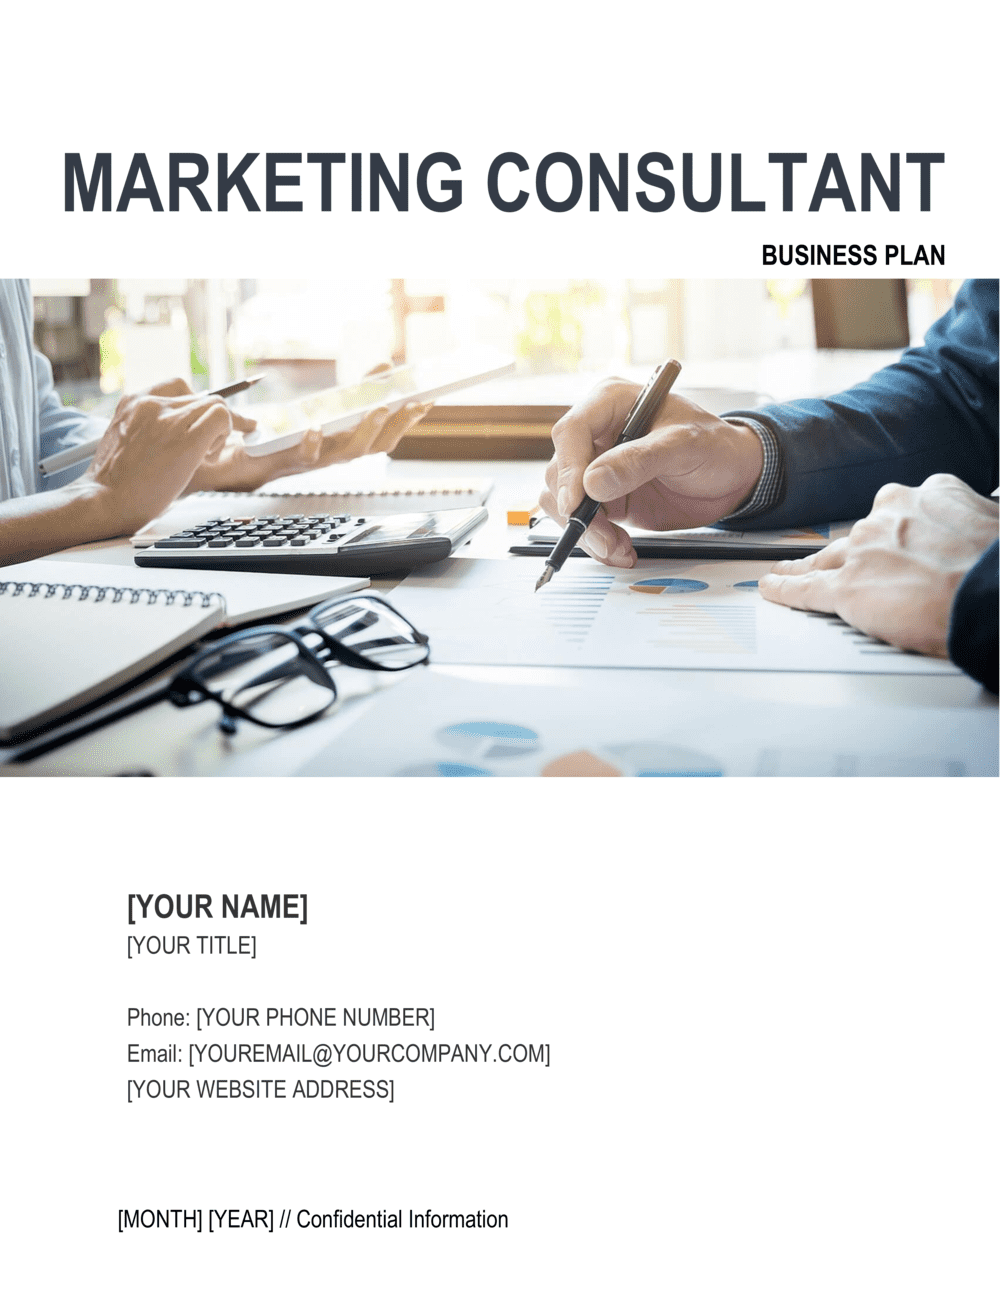 Business-in-a-Box's Marketing Consultant Business Plan Template